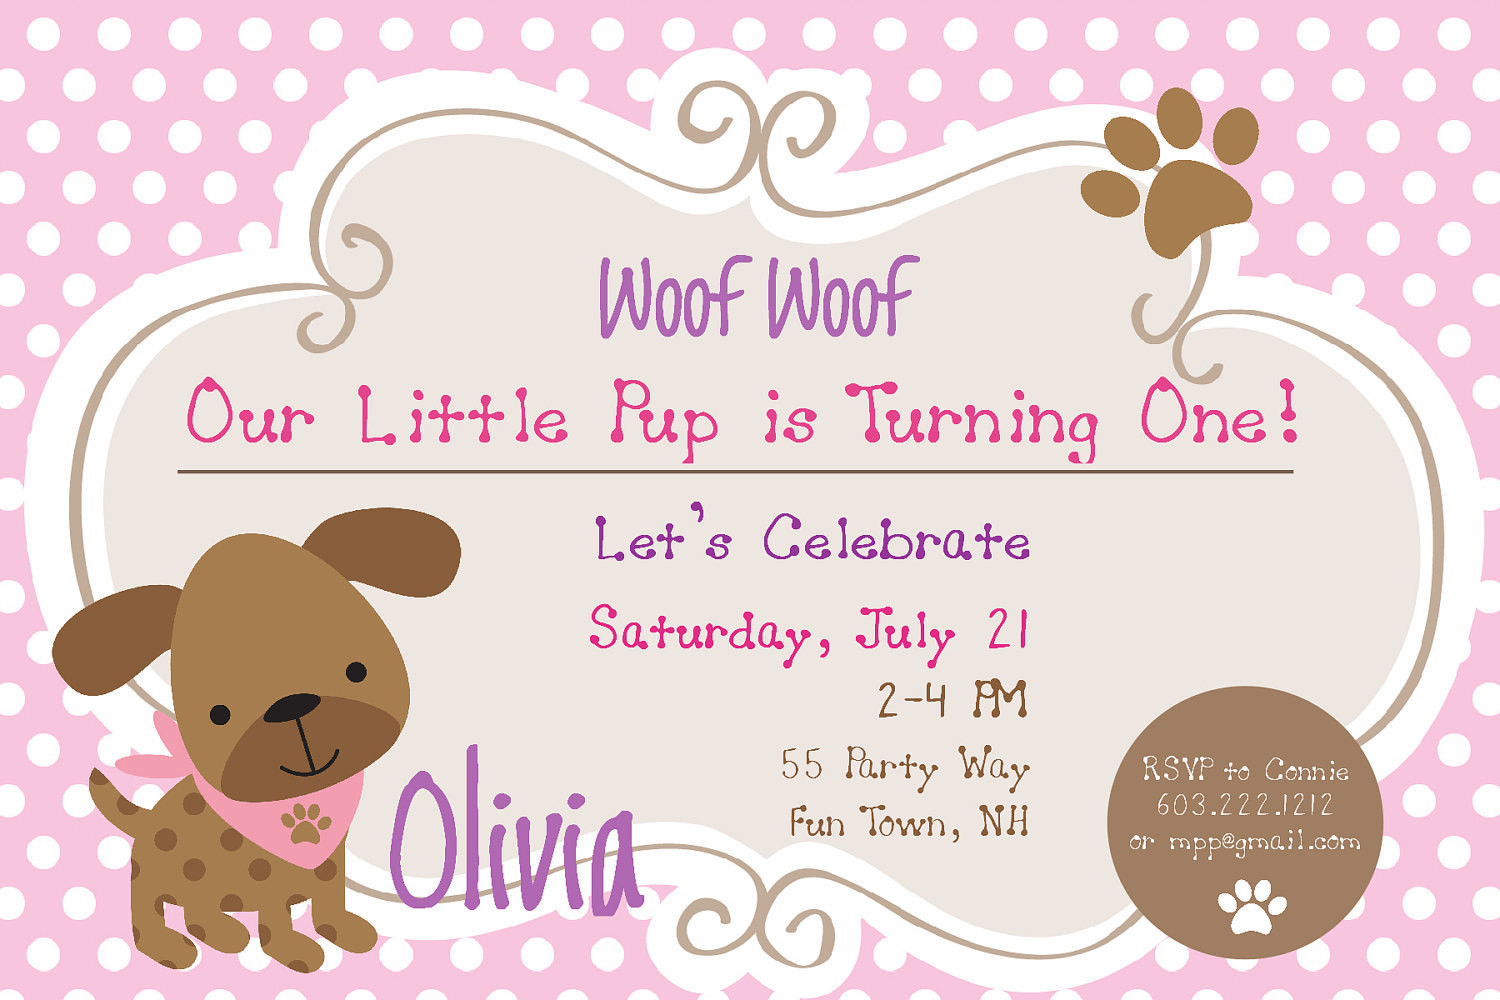 Dog Birthday Invitations  Dog Birthday Party Invitations Puppy Dog Party Invites 1st